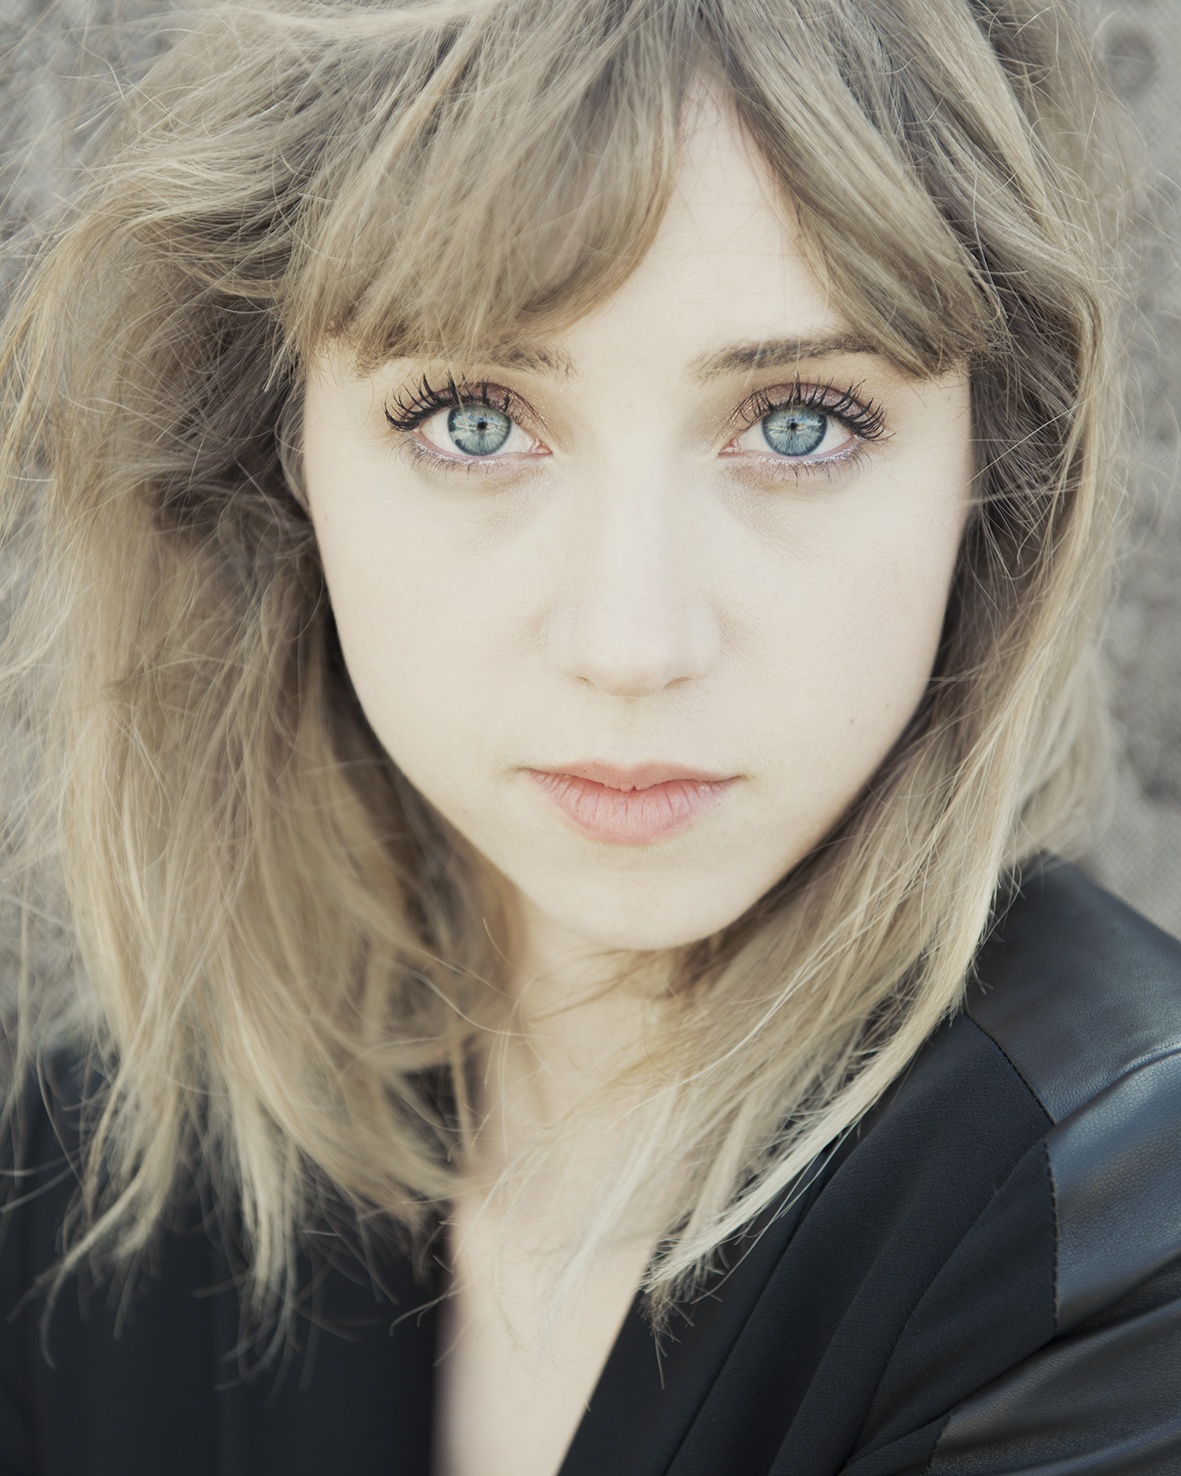 """photographe corporate"",""photographe industriel"", ""banque d'image d'entreprise"", portraits, ""photographe publicitaire"", ""photographe portraitiste"", ""photographe magazine"", ""photographe people"", Zoe kazan"